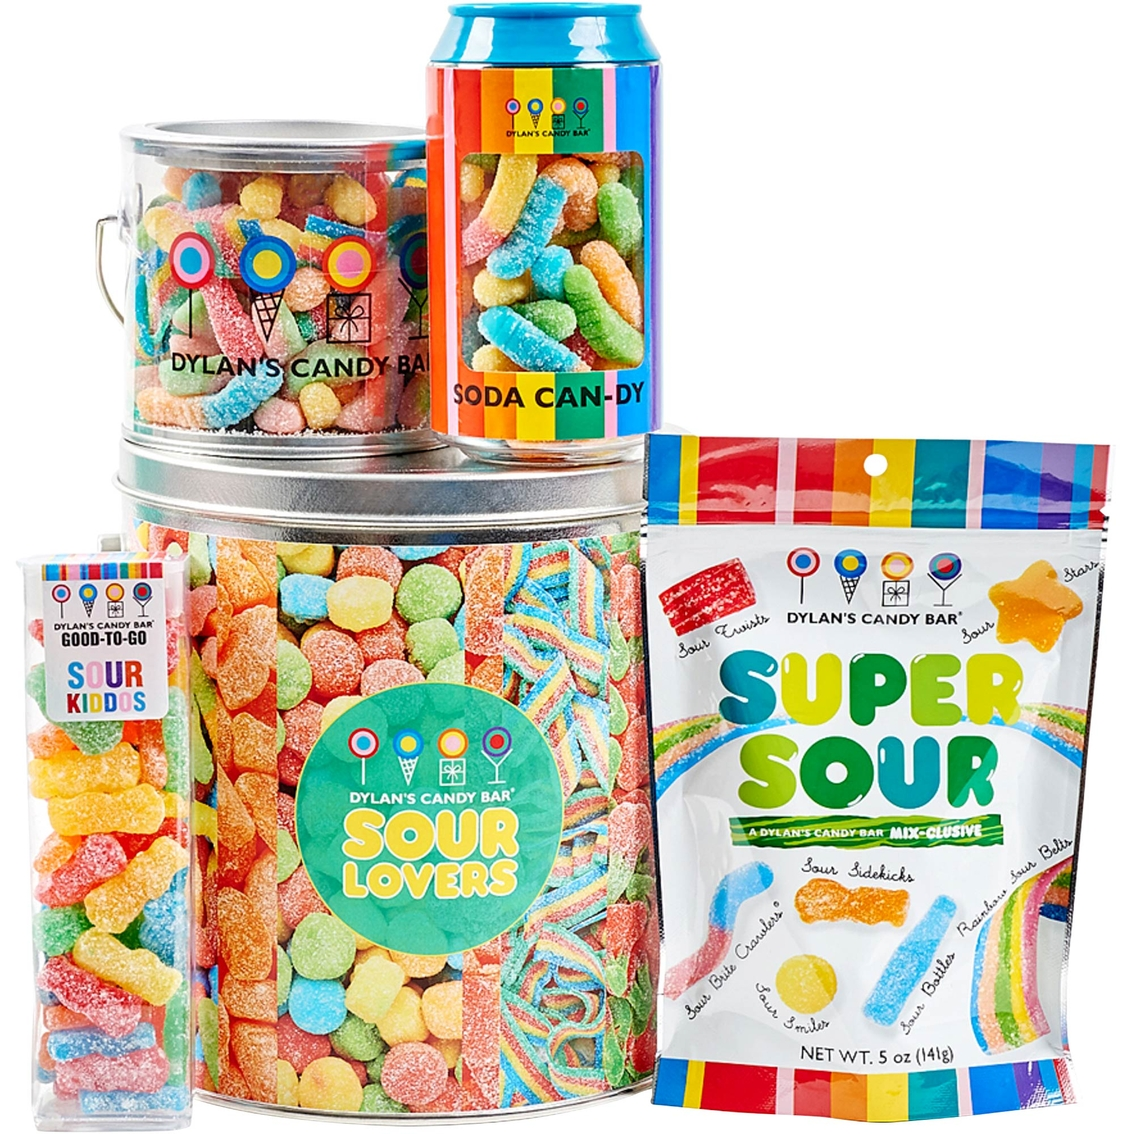 dylan s candy bar sour lovers bucket sweets chocolate gifts